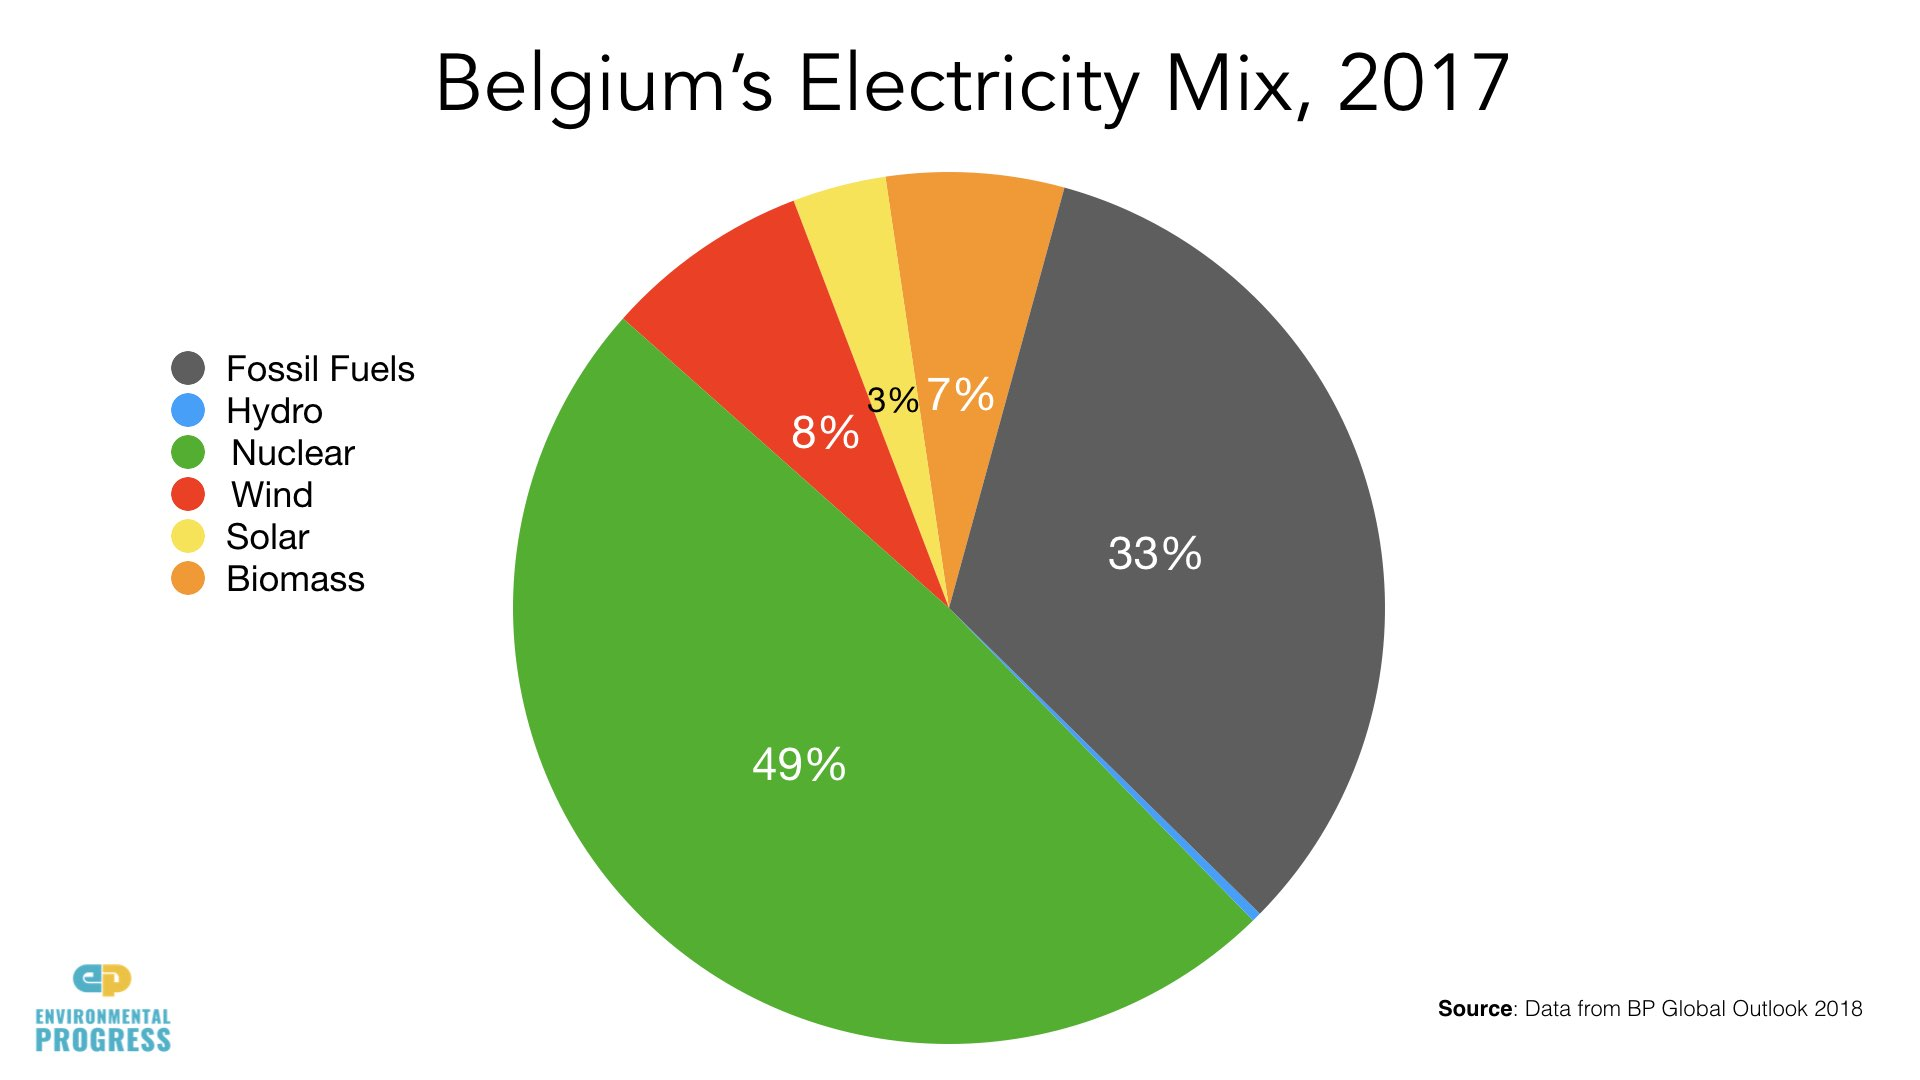 Why Belgium Needs Nuclear for web site.026.jpeg